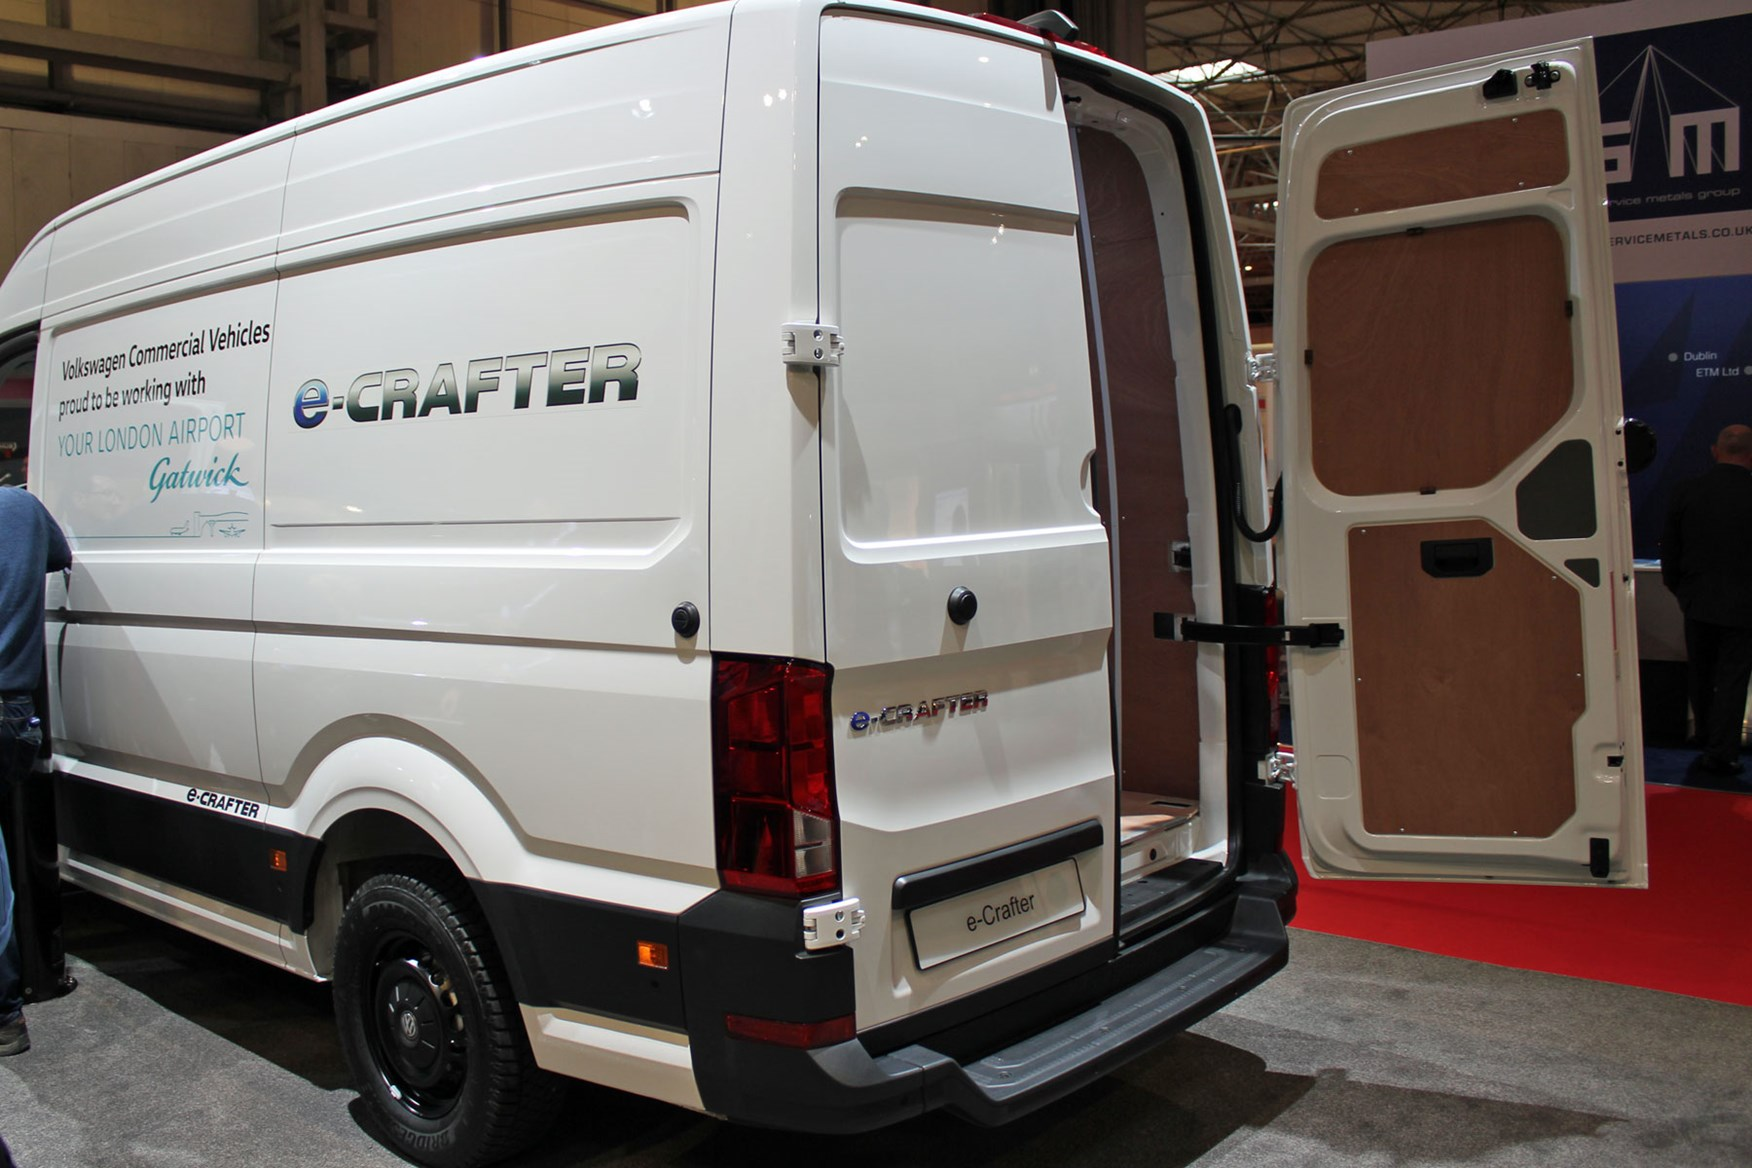 VW e-Crafter electric large van makes UK debut at CV Show 2018 | Parkers